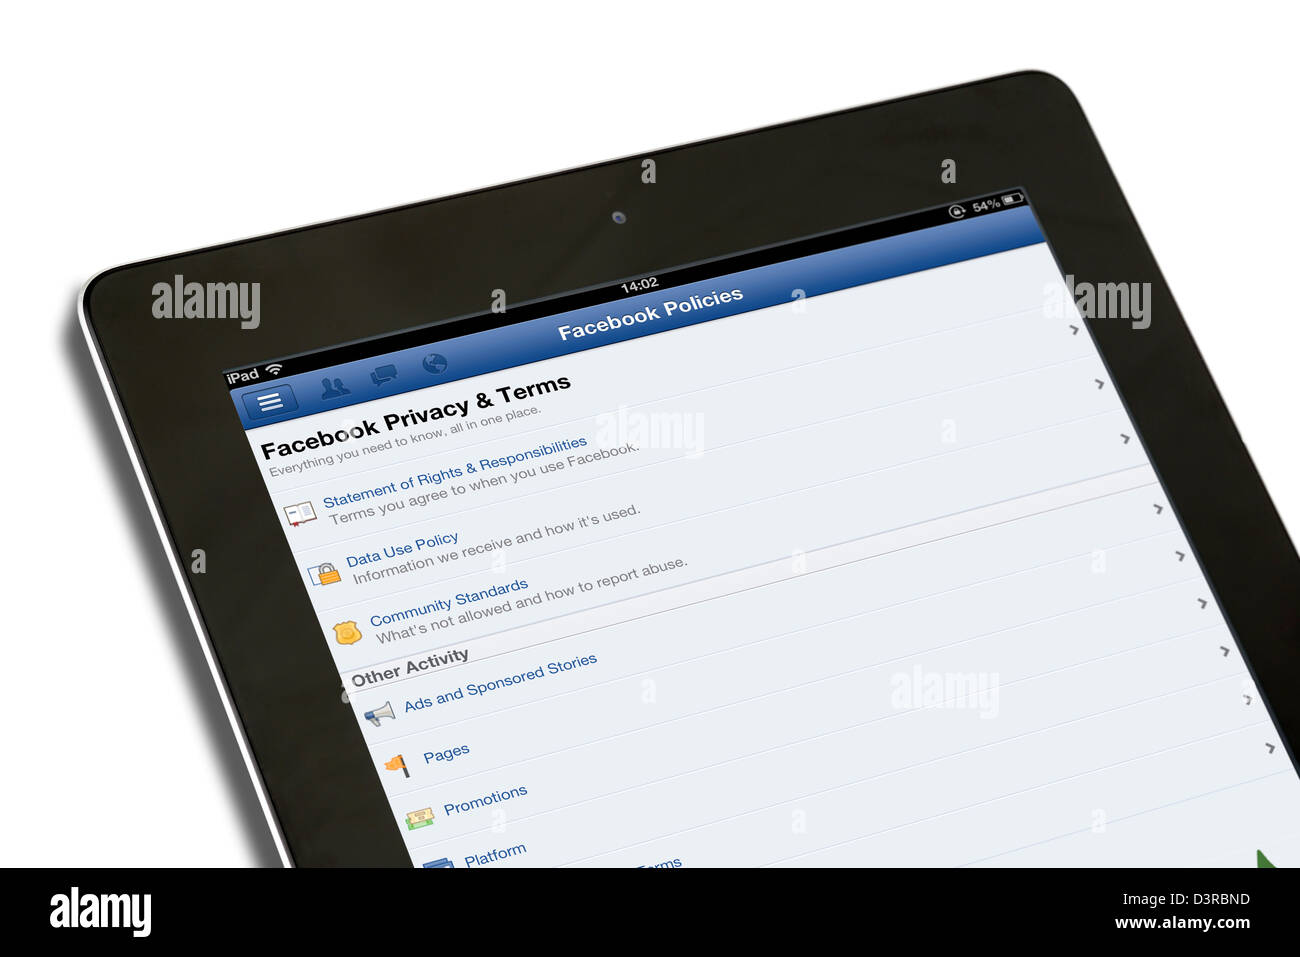 Facebook Privacy and Terms on the Facebook Policies page, viewed on a 4th generation iPad - Stock Image